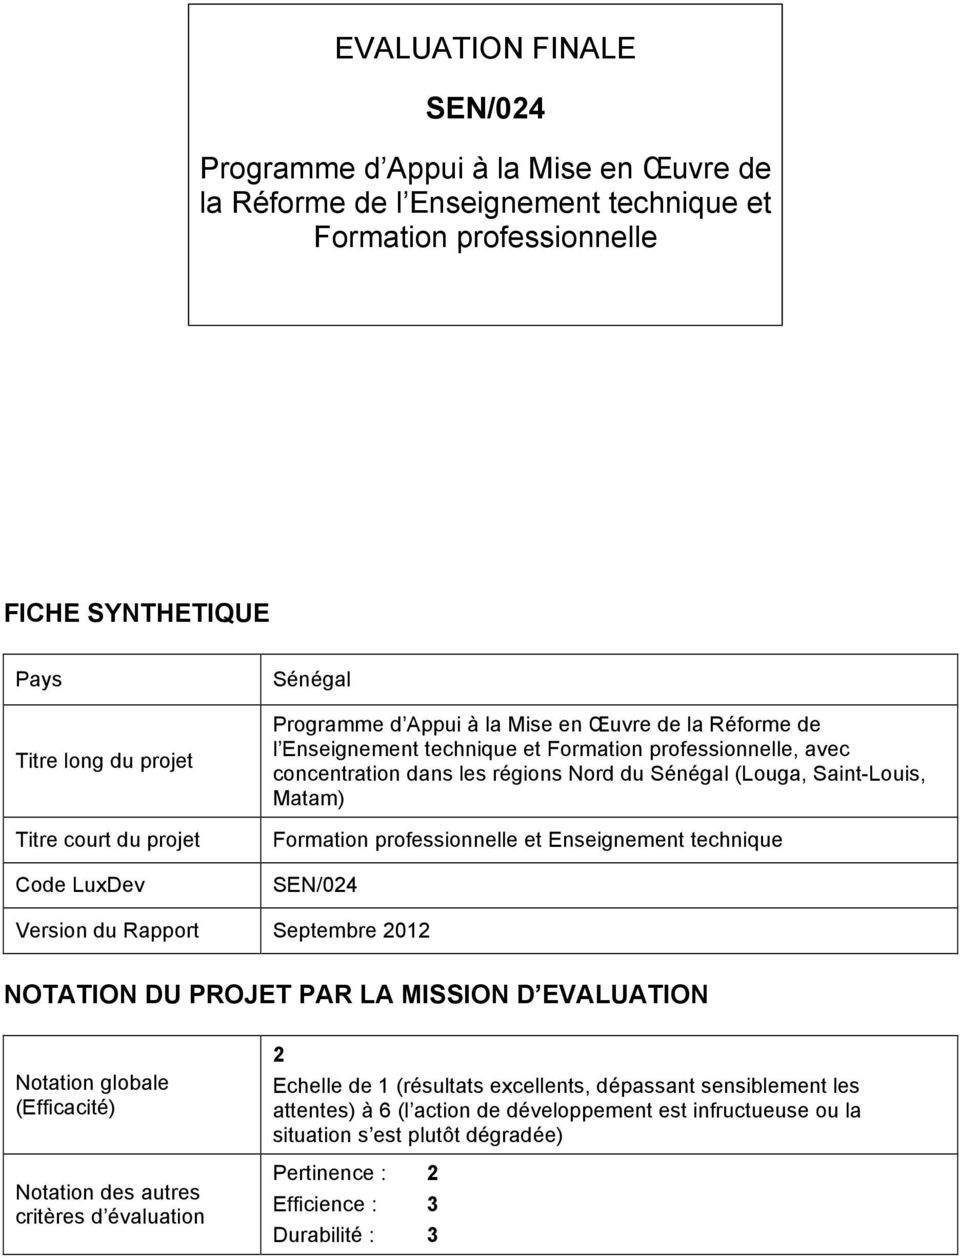 Saint-Louis, Matam) Formation professionnelle et Enseignement technique SEN/024 Version du Rapport Septembre 2012 NOTATION DU PROJET PAR LA MISSION D EVALUATION Notation globale (Efficacité) Notation